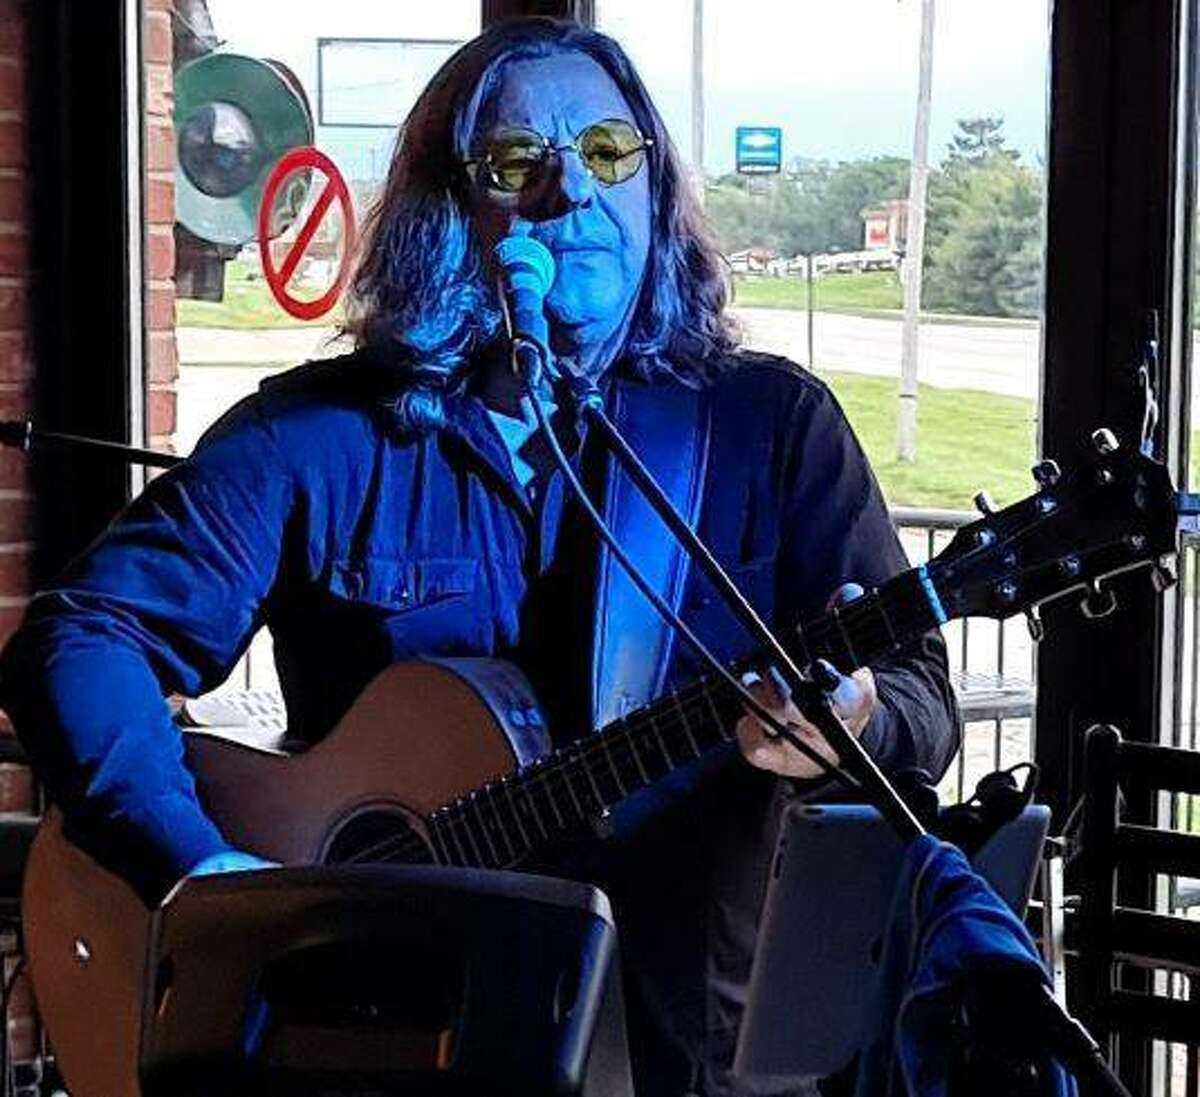 David Edrington will perform at Big Daddy's, 132 N. Main St., in Edwardsville on Tuesday, Aug. 10 at 6 p.m.